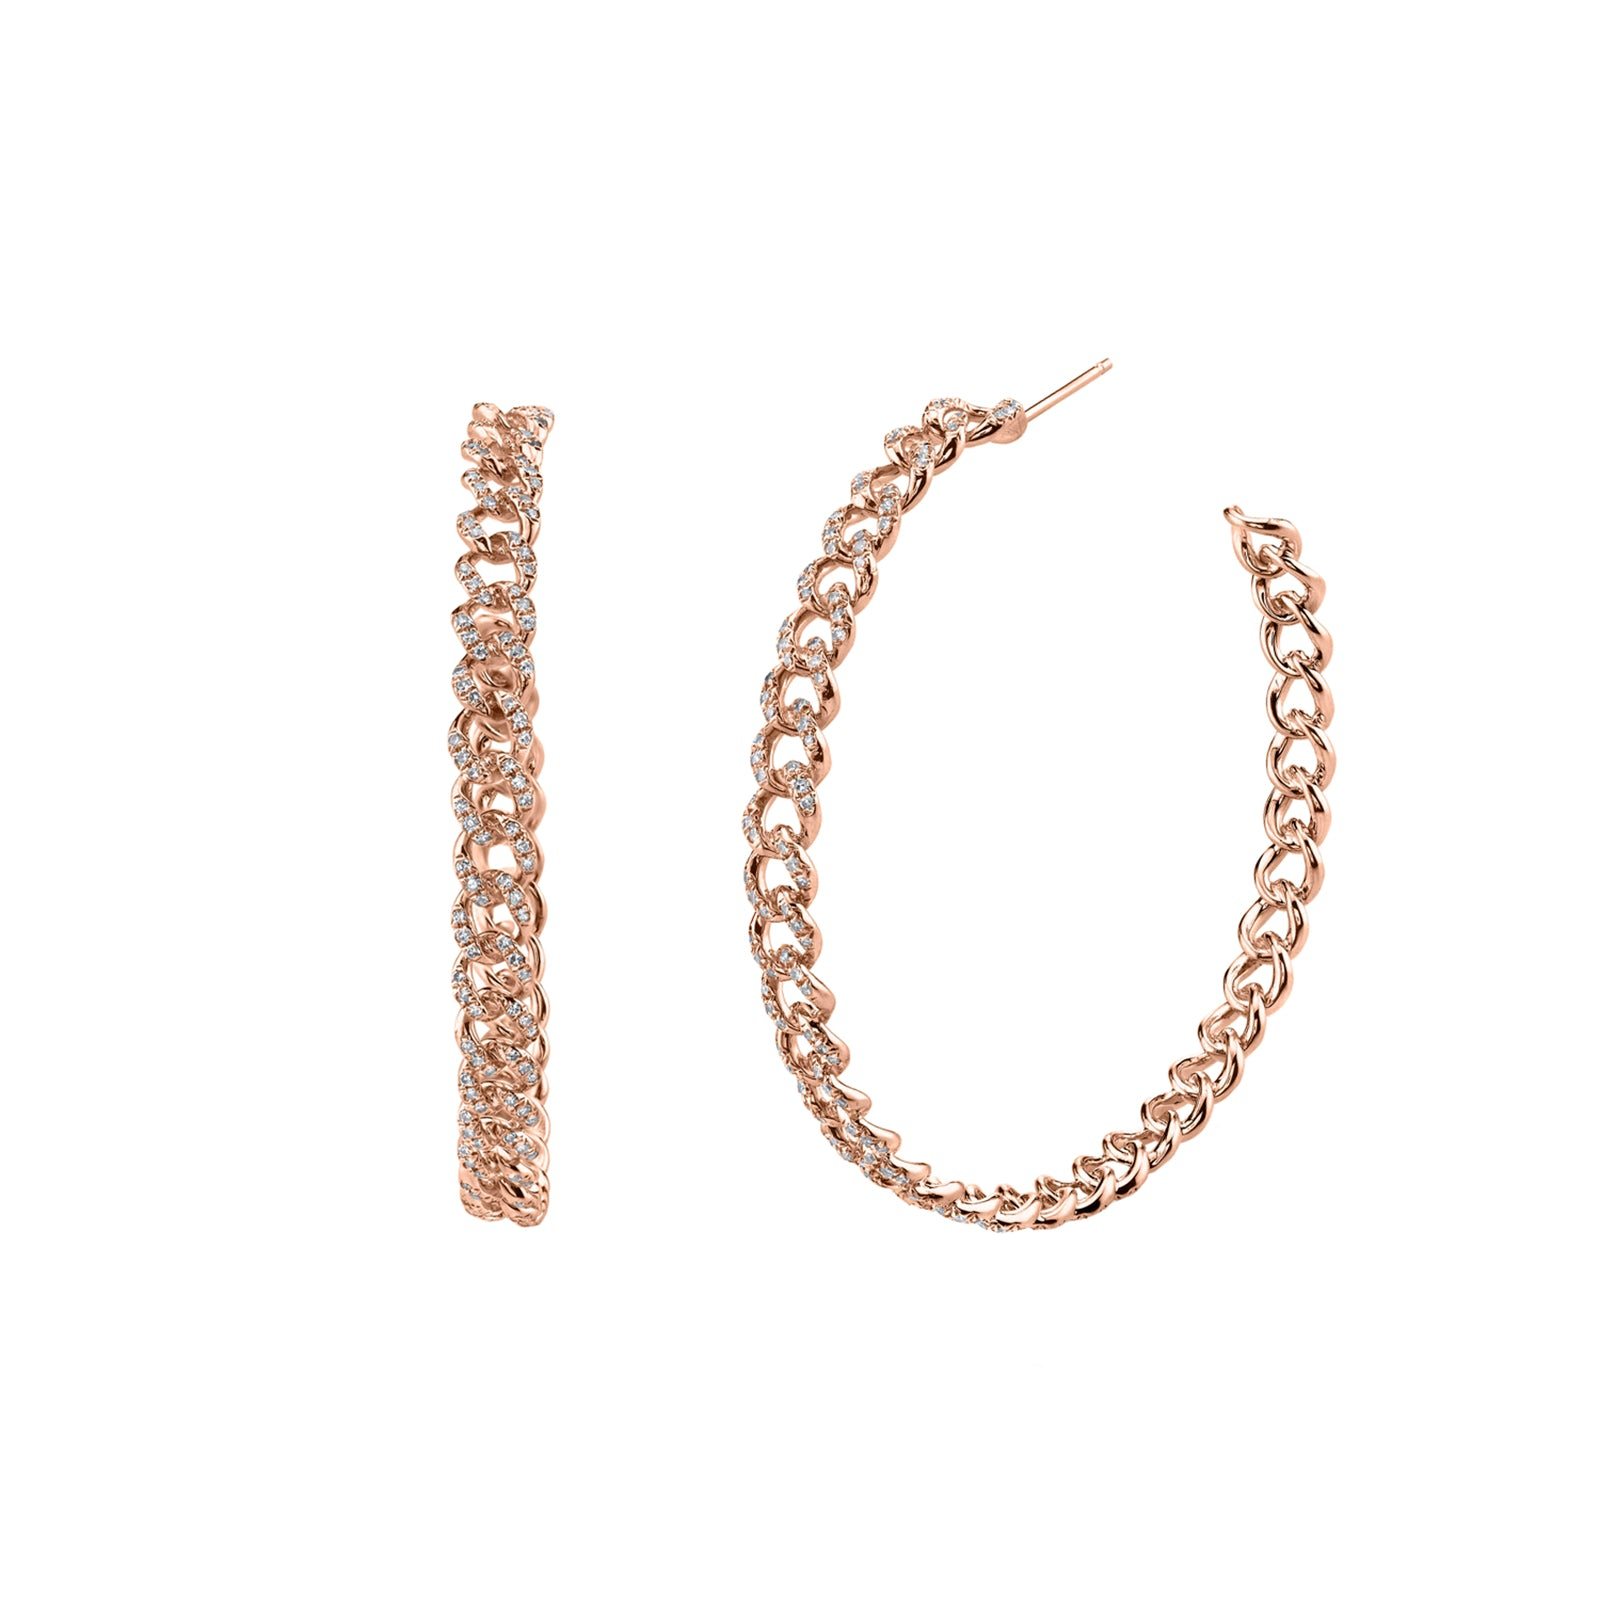 Shay Essential Diamond Link Hoops - Rose Gold - Earrings - Broken English Jewelry